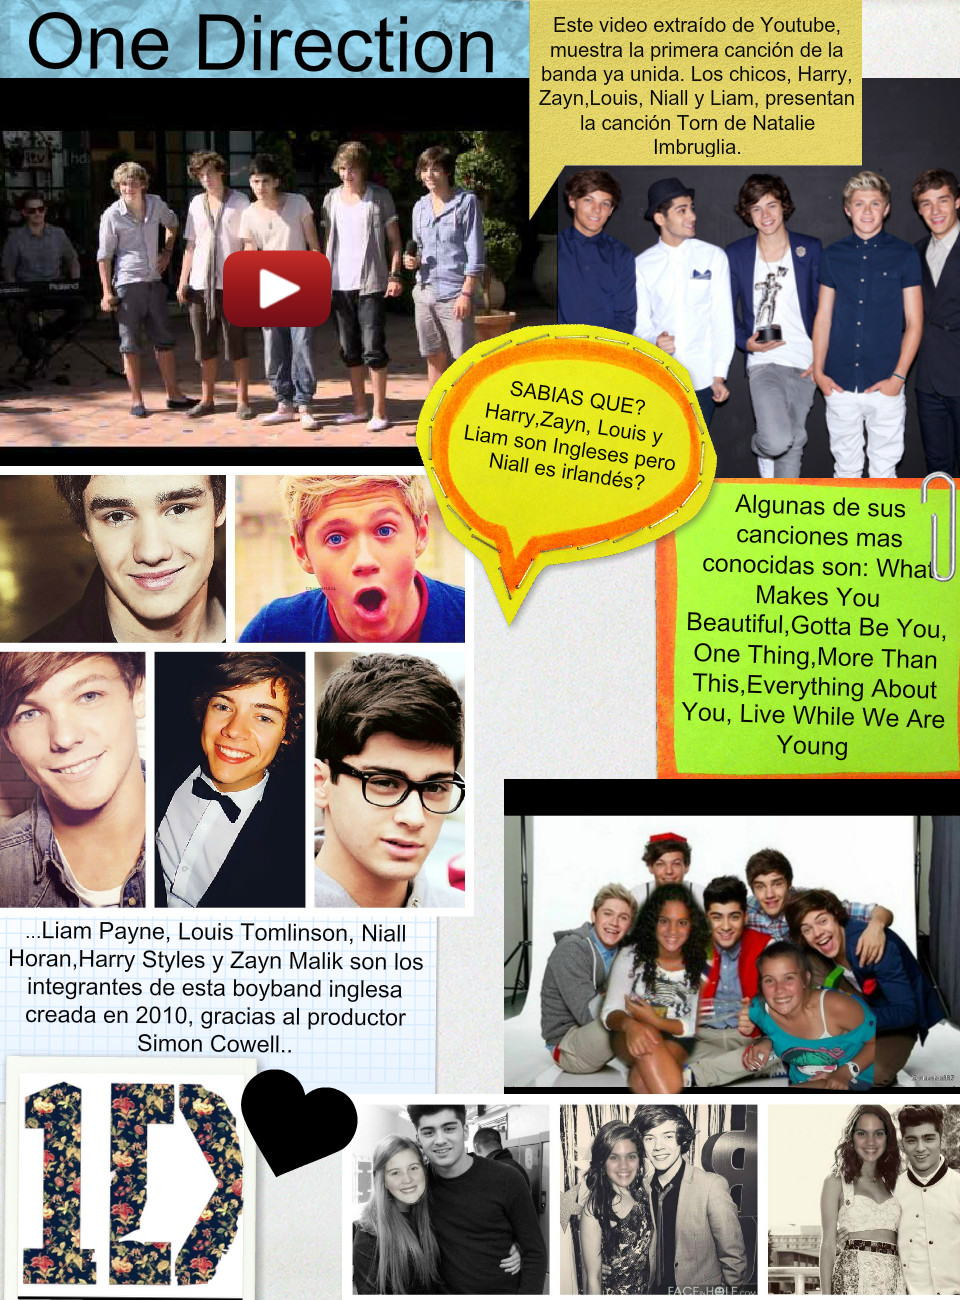 Glongster One Direction